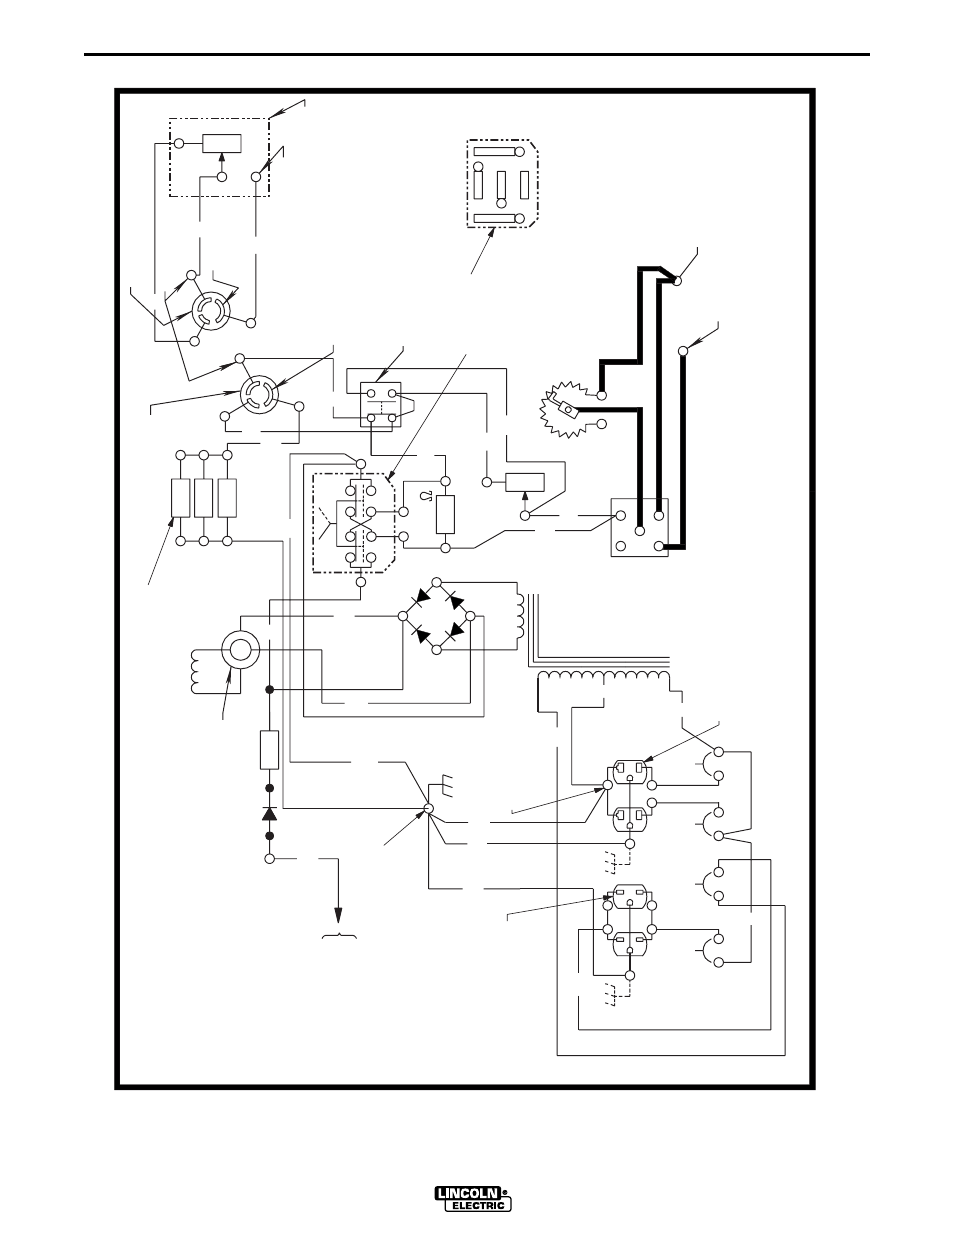 Alternator Welder Wiring Diagram Welding Machine Lincoln Ranger 9 Diagrams Sae400 Weldu0027n Air Control Sae 400 Electric Im581 User Manual Page 28